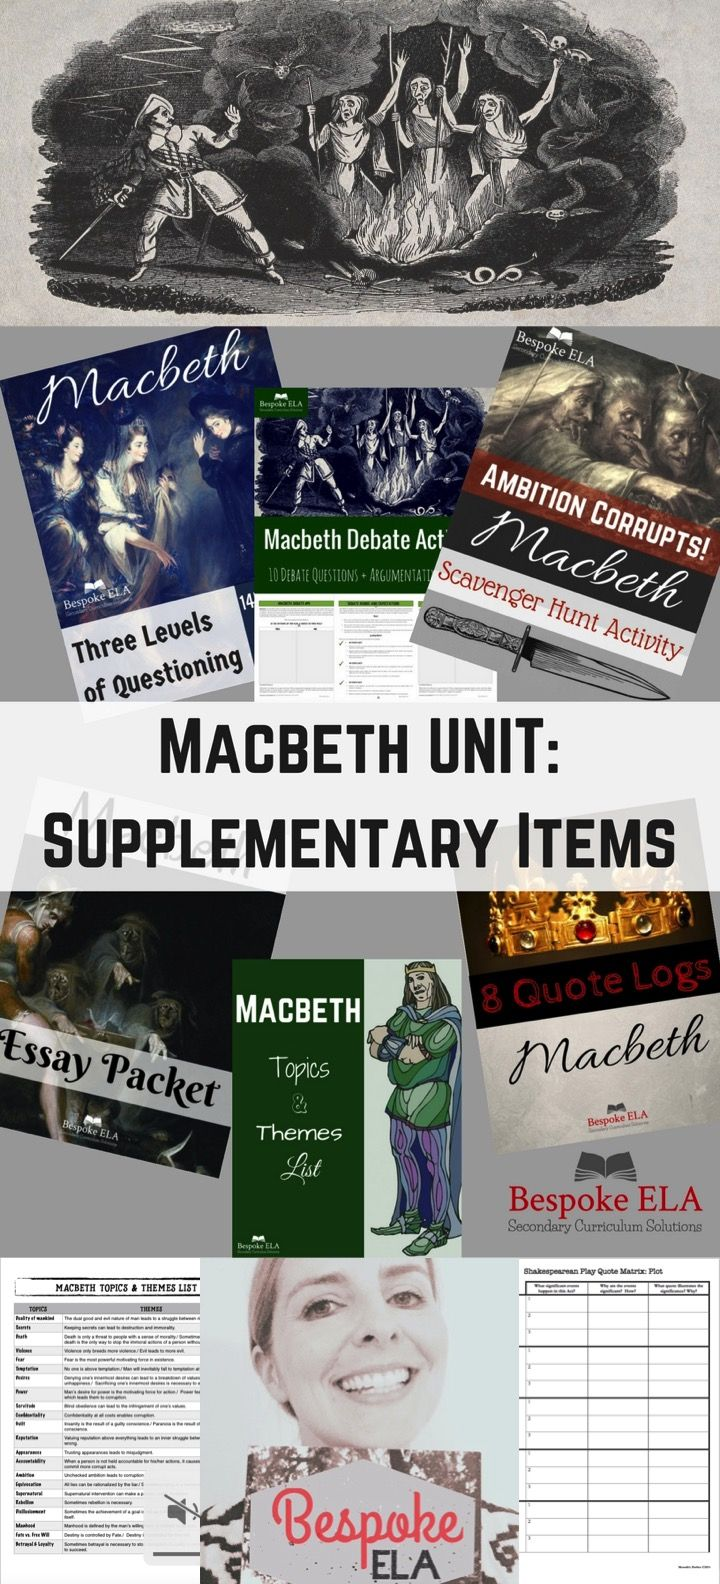 17 best images about macbeth lesson plans and activities for macbeth bundle supplementary materials for any macbeth unit